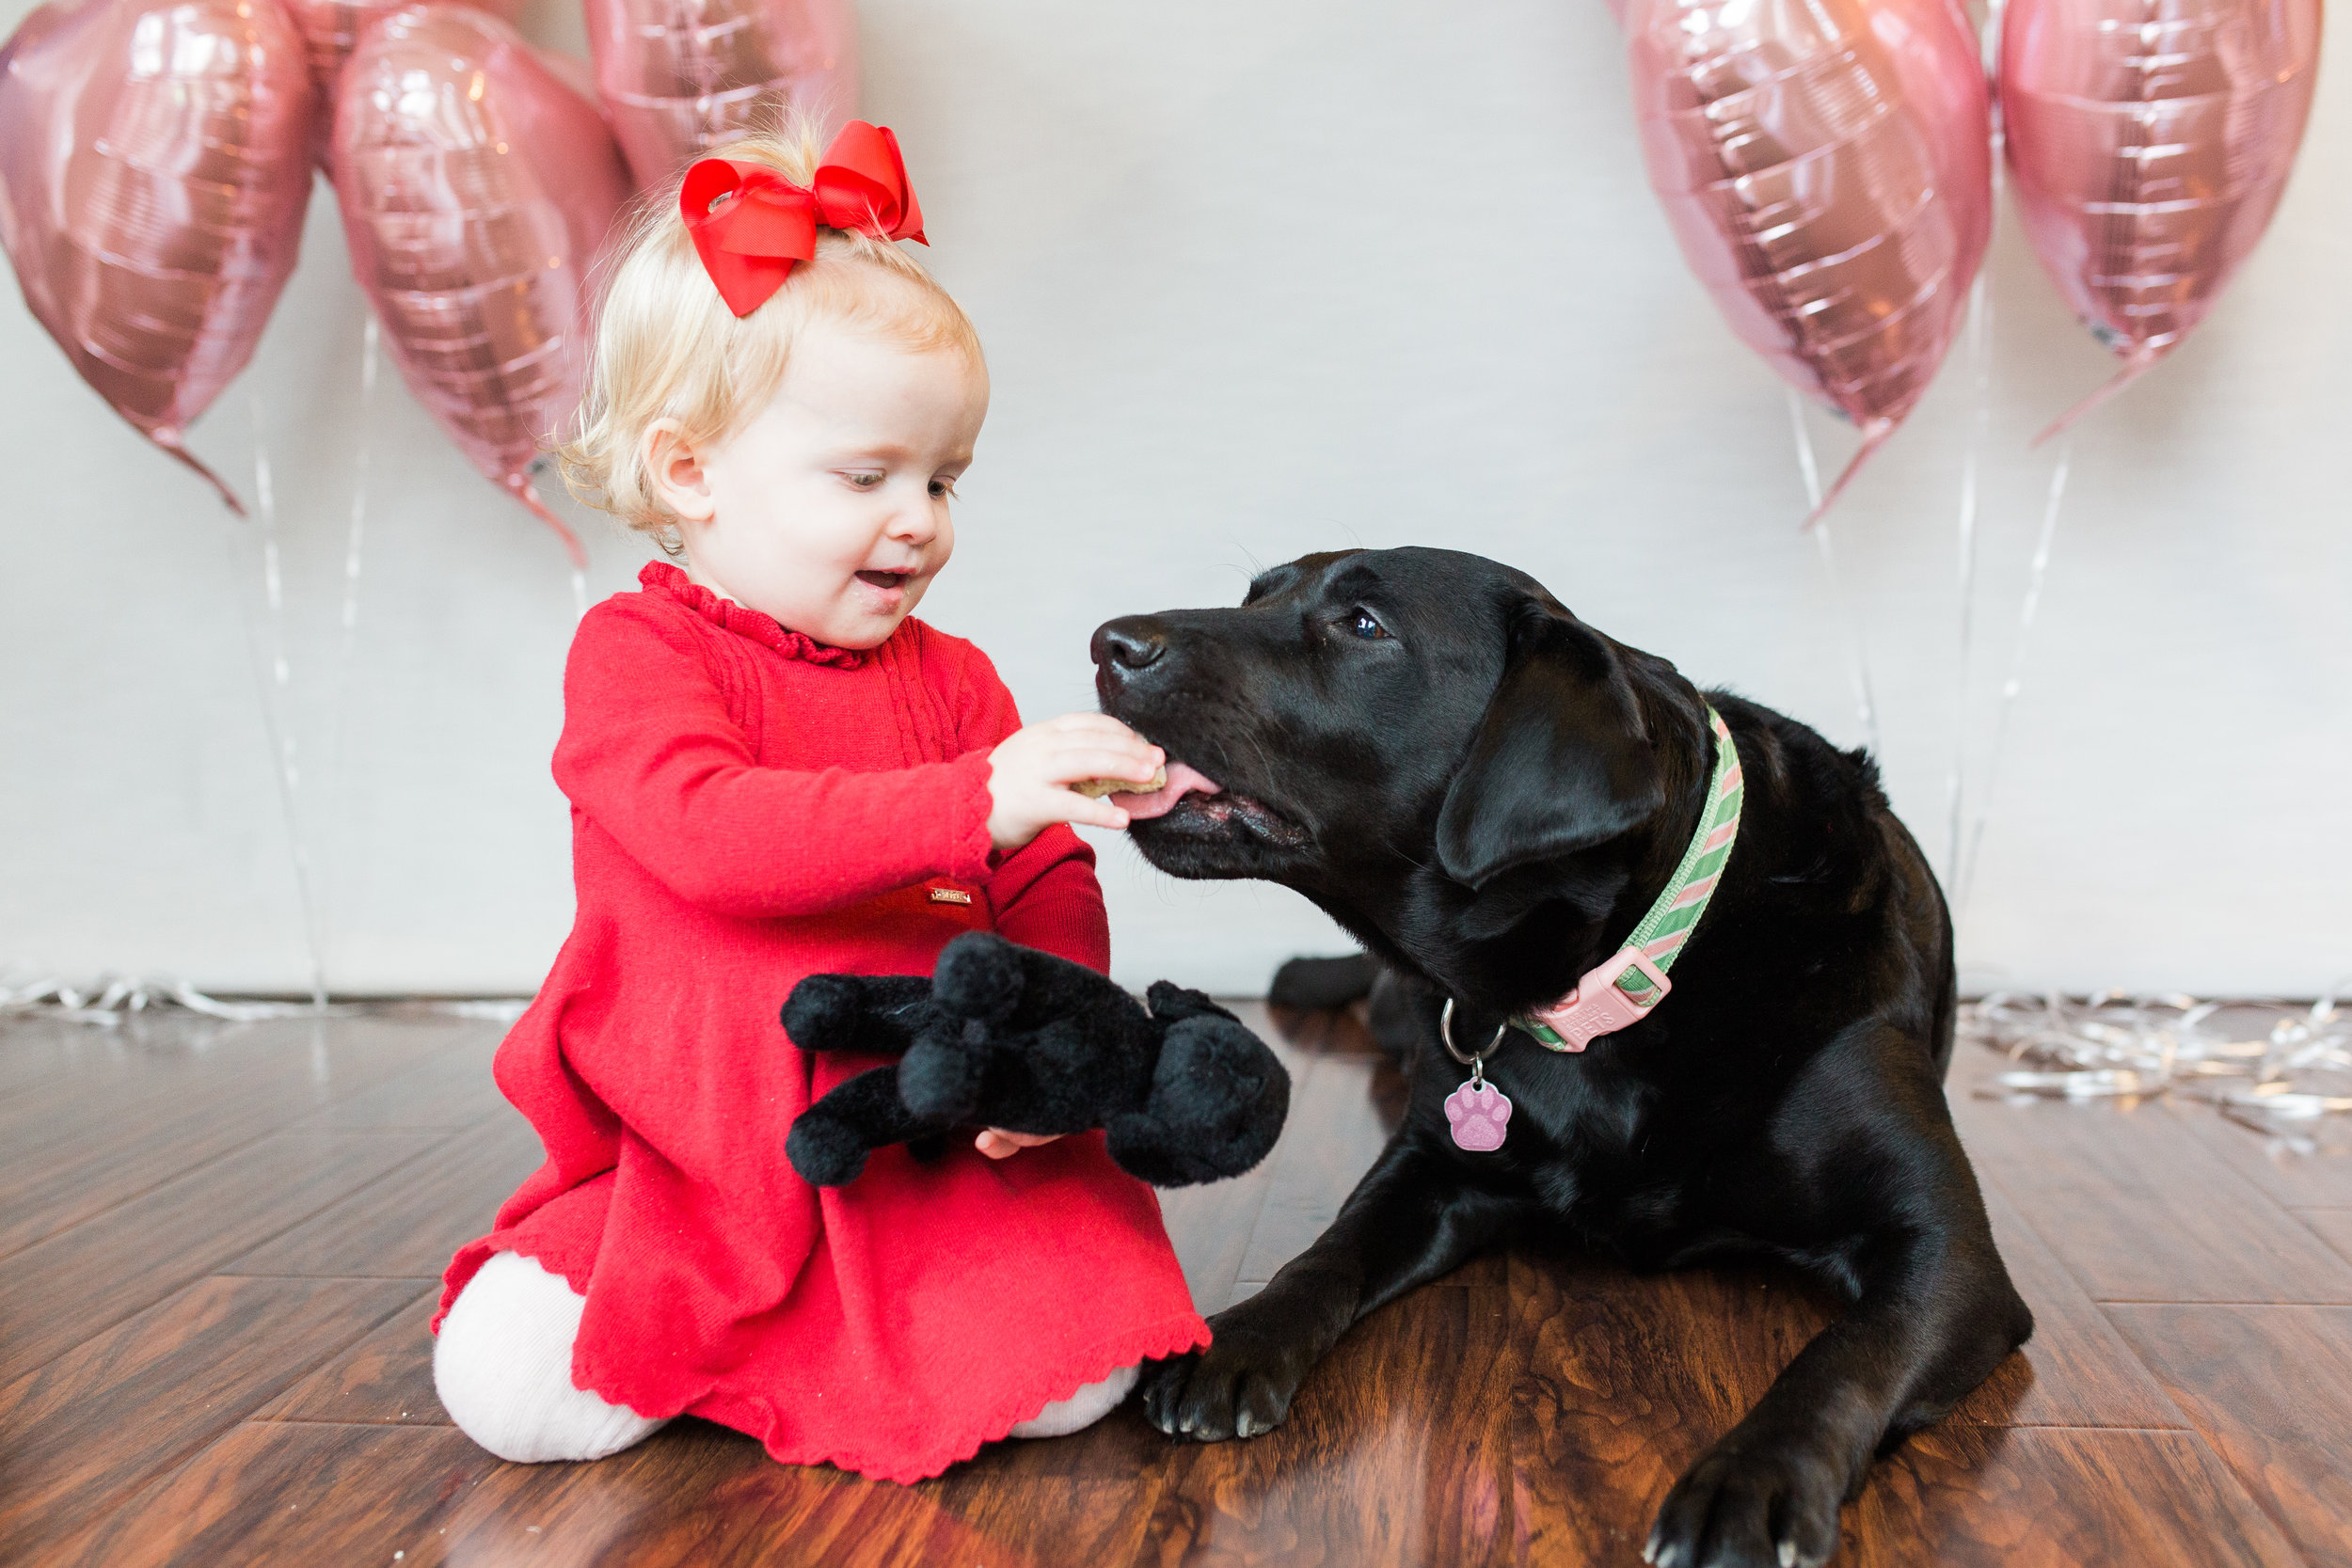 Oh and this photo of my niece sharing her Valentines cookies with my dog Chloe is a bonus favorite because it doesn't get much cuter than this!